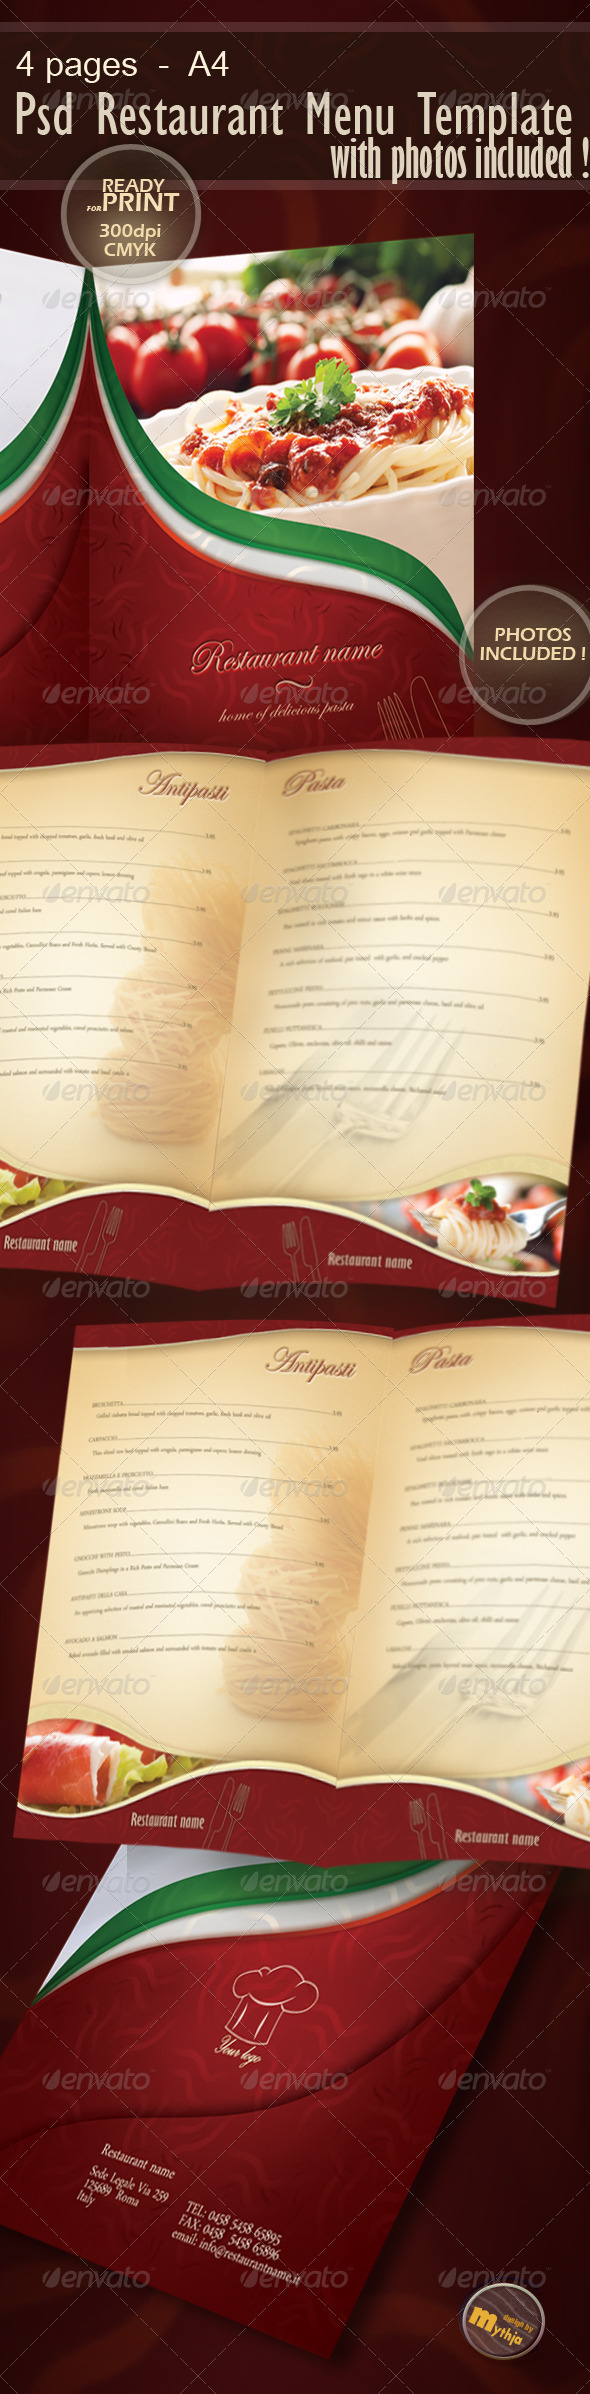 60 premium restaurant menu templates dzineflip for Templates for restaurant menus